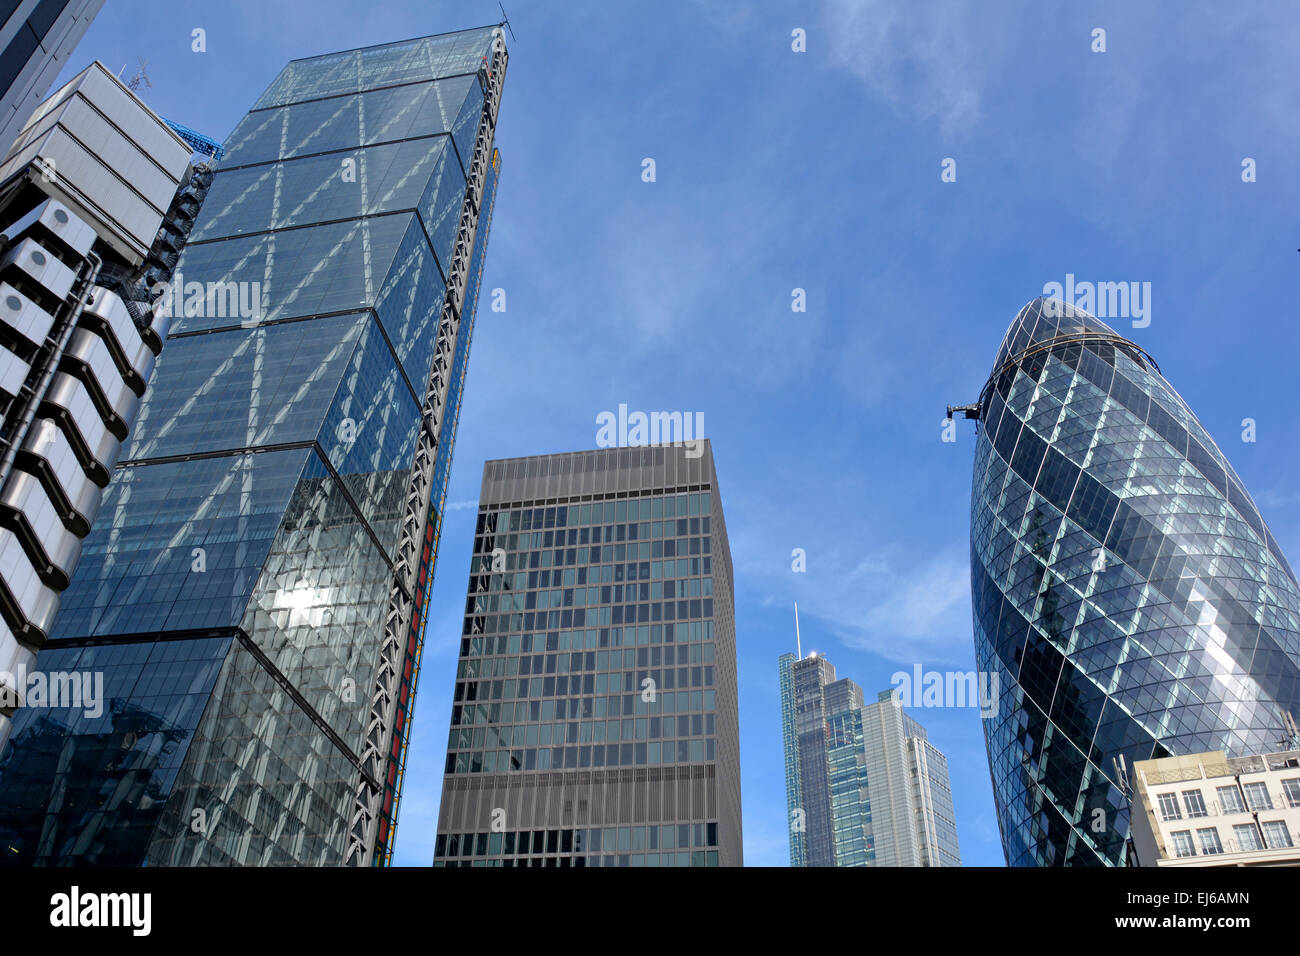 High rise buildings in the City of London L-R Lloyds, Cheesegrater, Aviva Tower, Heron Tower, and the Gherkin - Stock Image